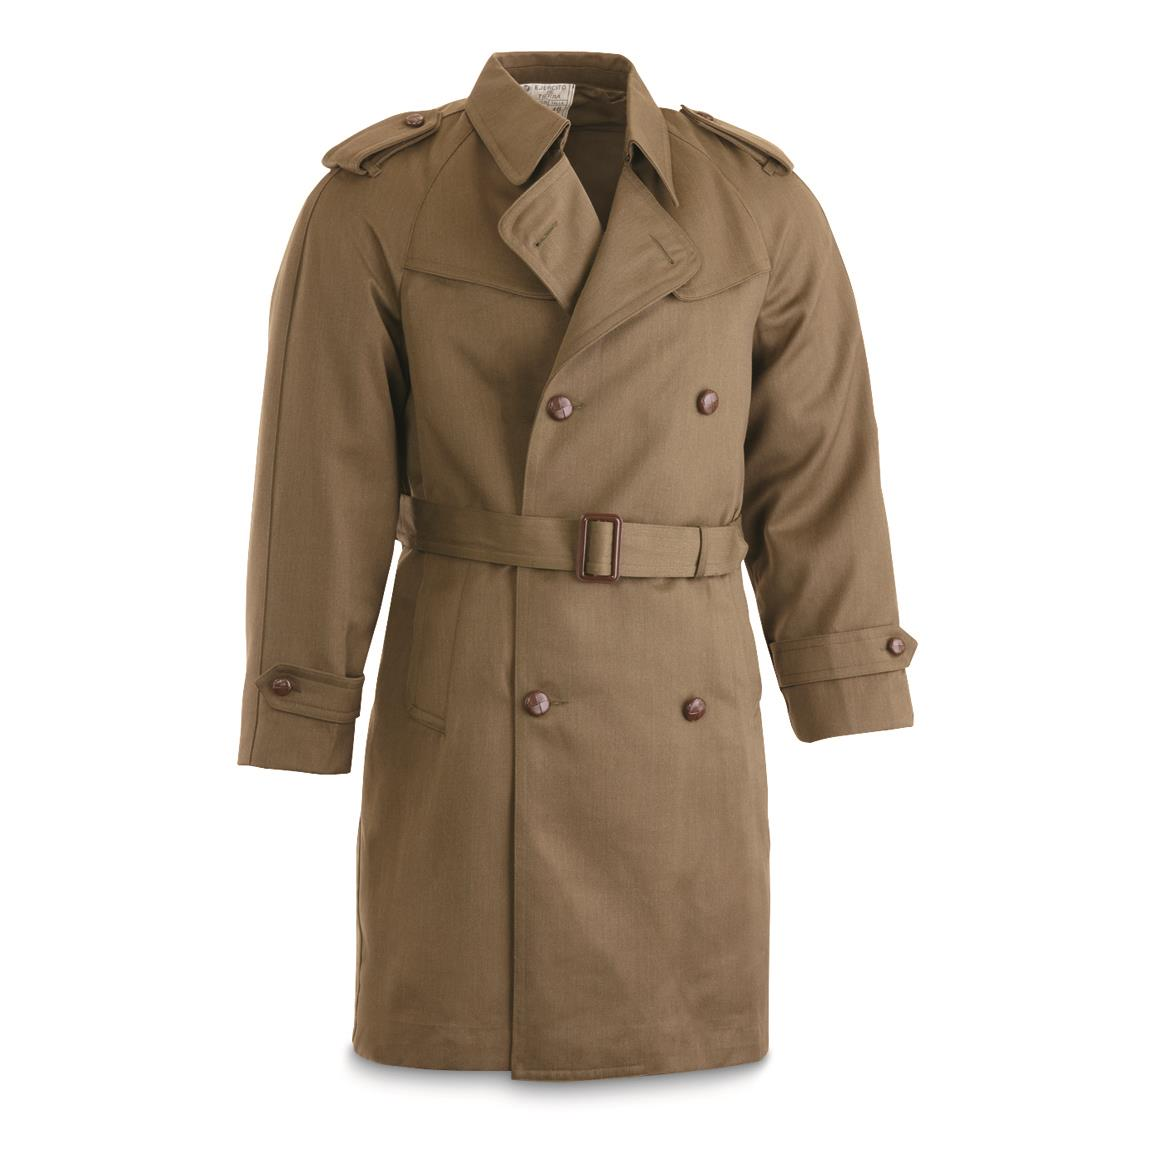 Spanish Military Surplus Wool Blend Trench Coat, Like New